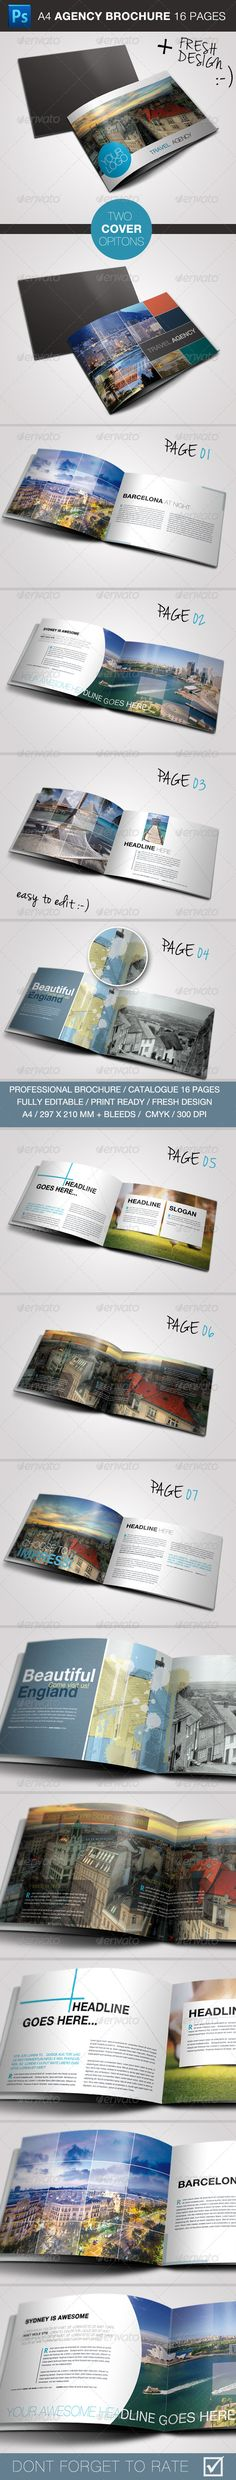 Buy Travel / Business Brochure by pixxli on GraphicRiver. This is a complete layout for a printable brochure. Text and images/colors are easy to change, just drop in your own . Travel Brochure Template, Design Brochure, Creative Brochure, Brochure Layout, Branding Design, Brochure Inspiration, Graphic Design Inspiration, Business Brochure, Business Travel